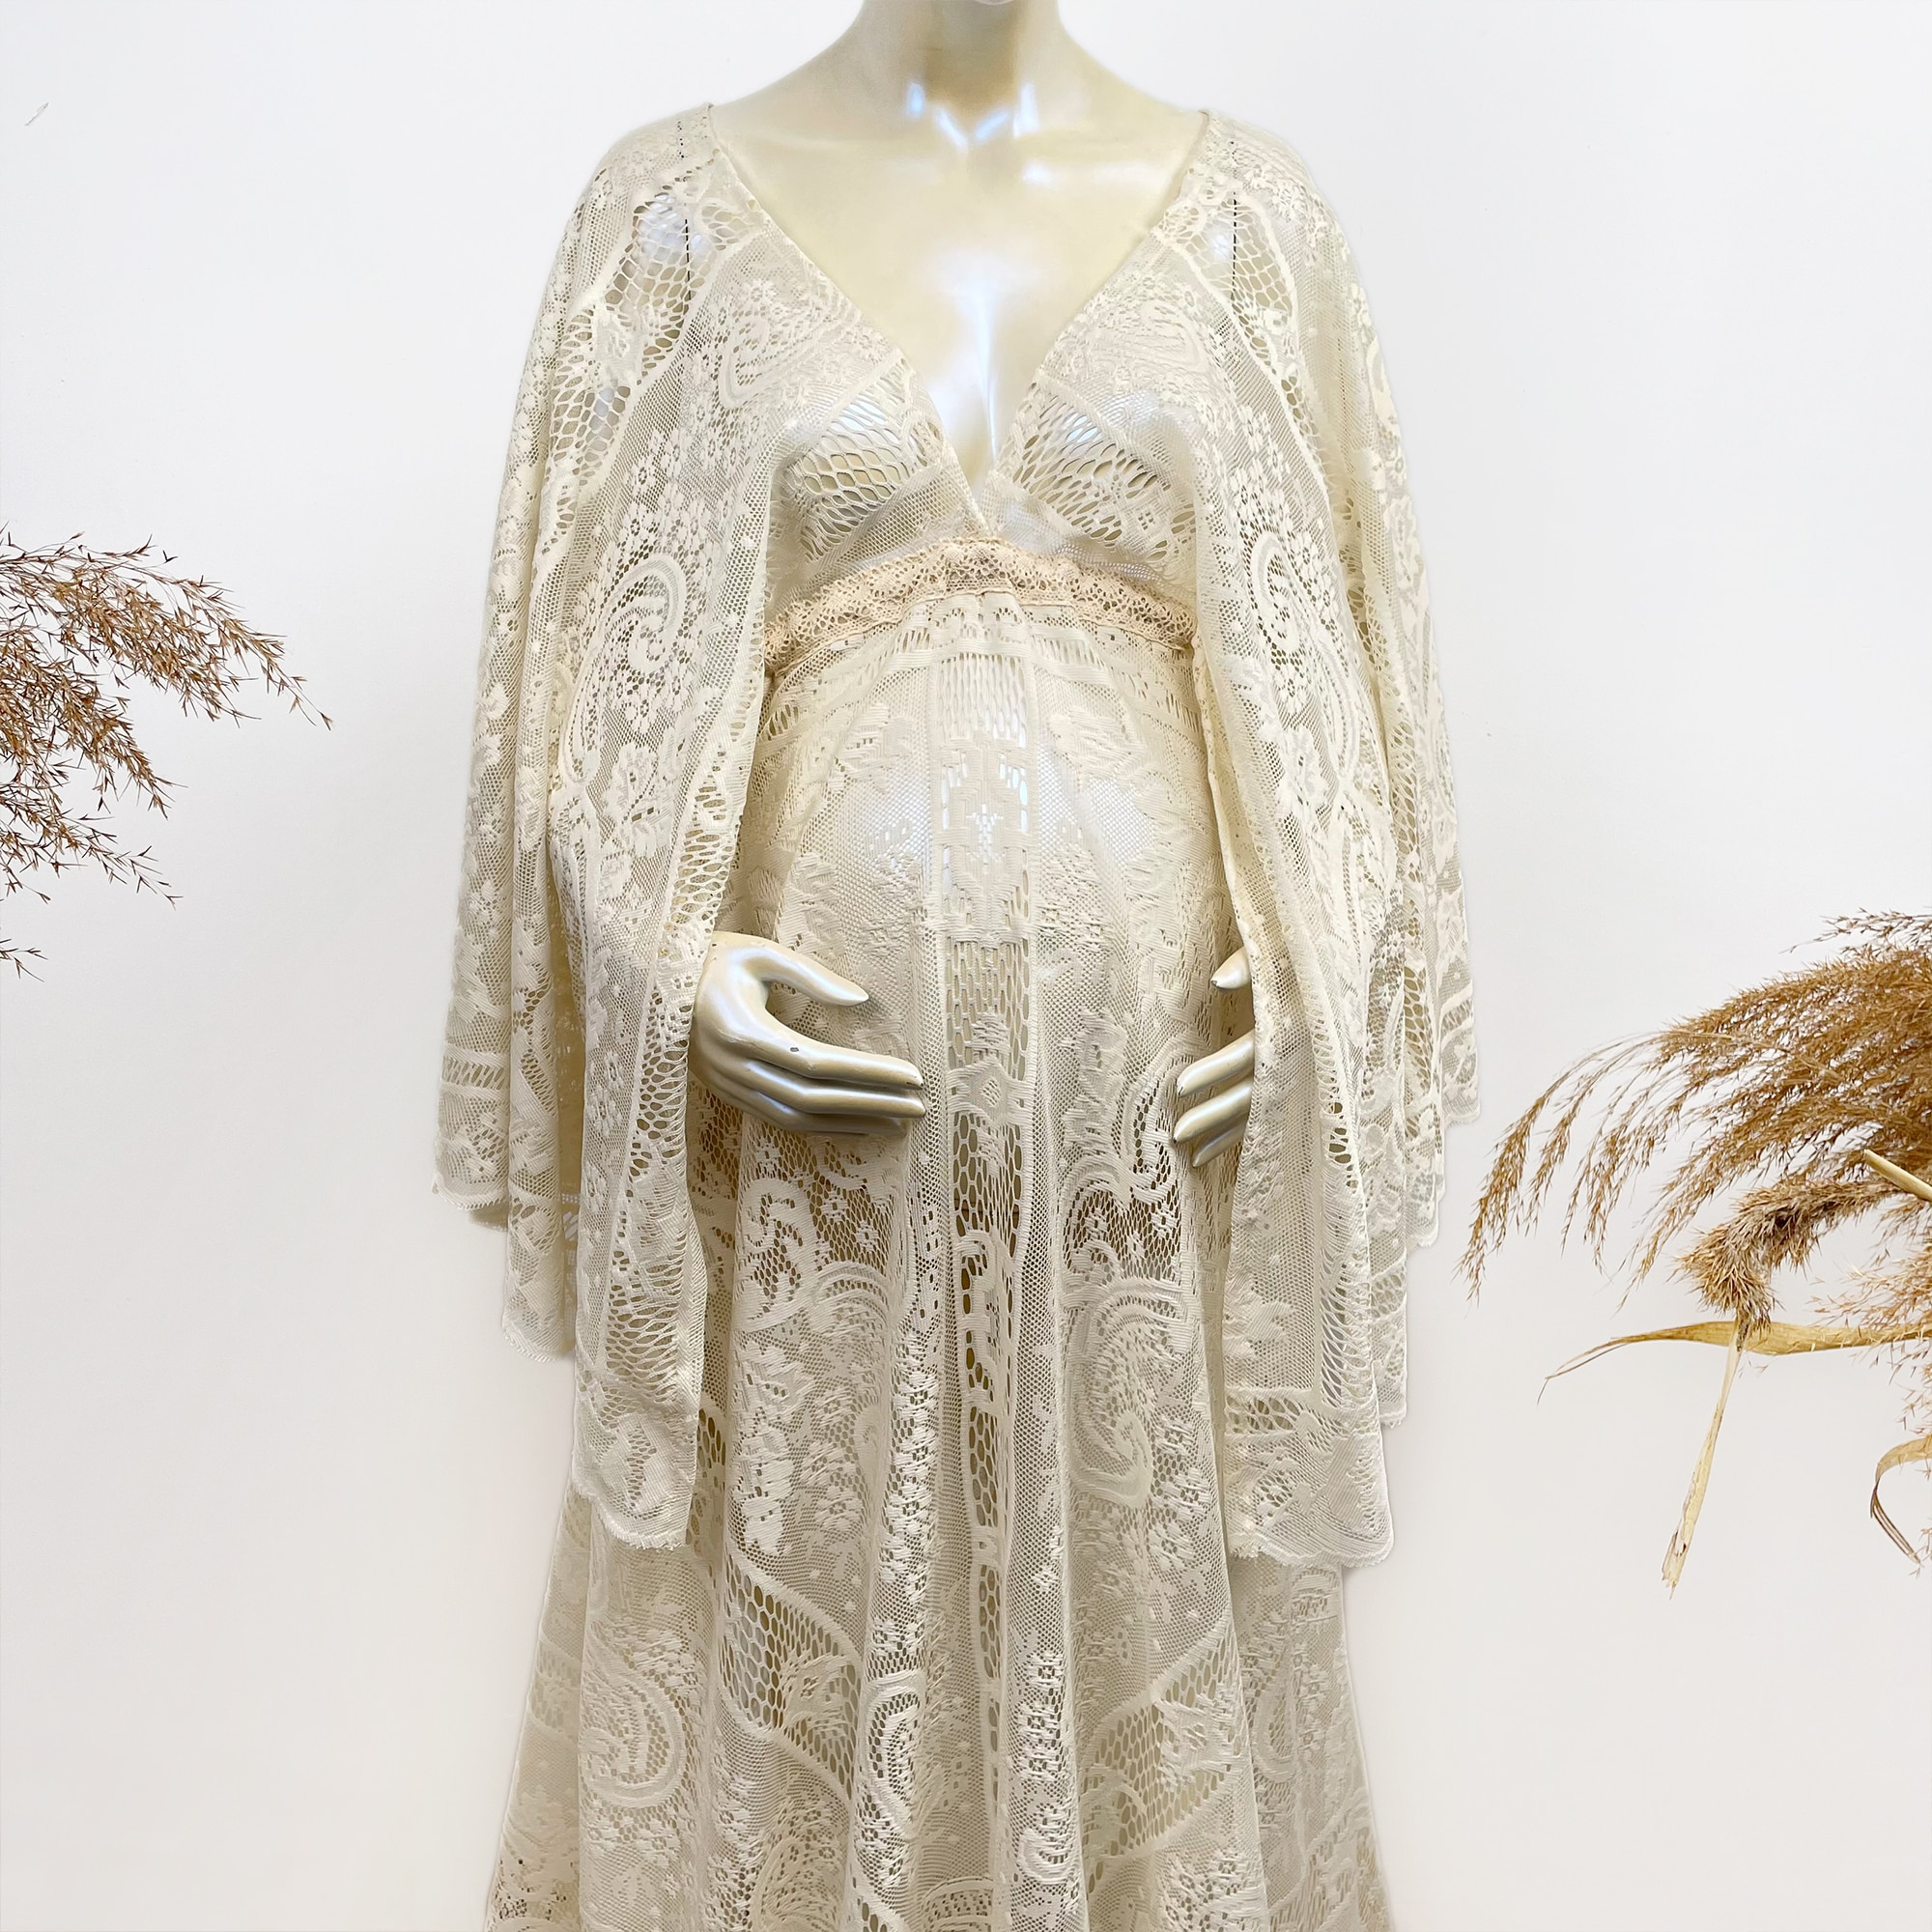 Boho Lace Photo Shoot Costume Maxi Long Bell Sleeves Maternity Dress Pregnancy Gown Robe for Woman Photography Props Baby Shower enlarge